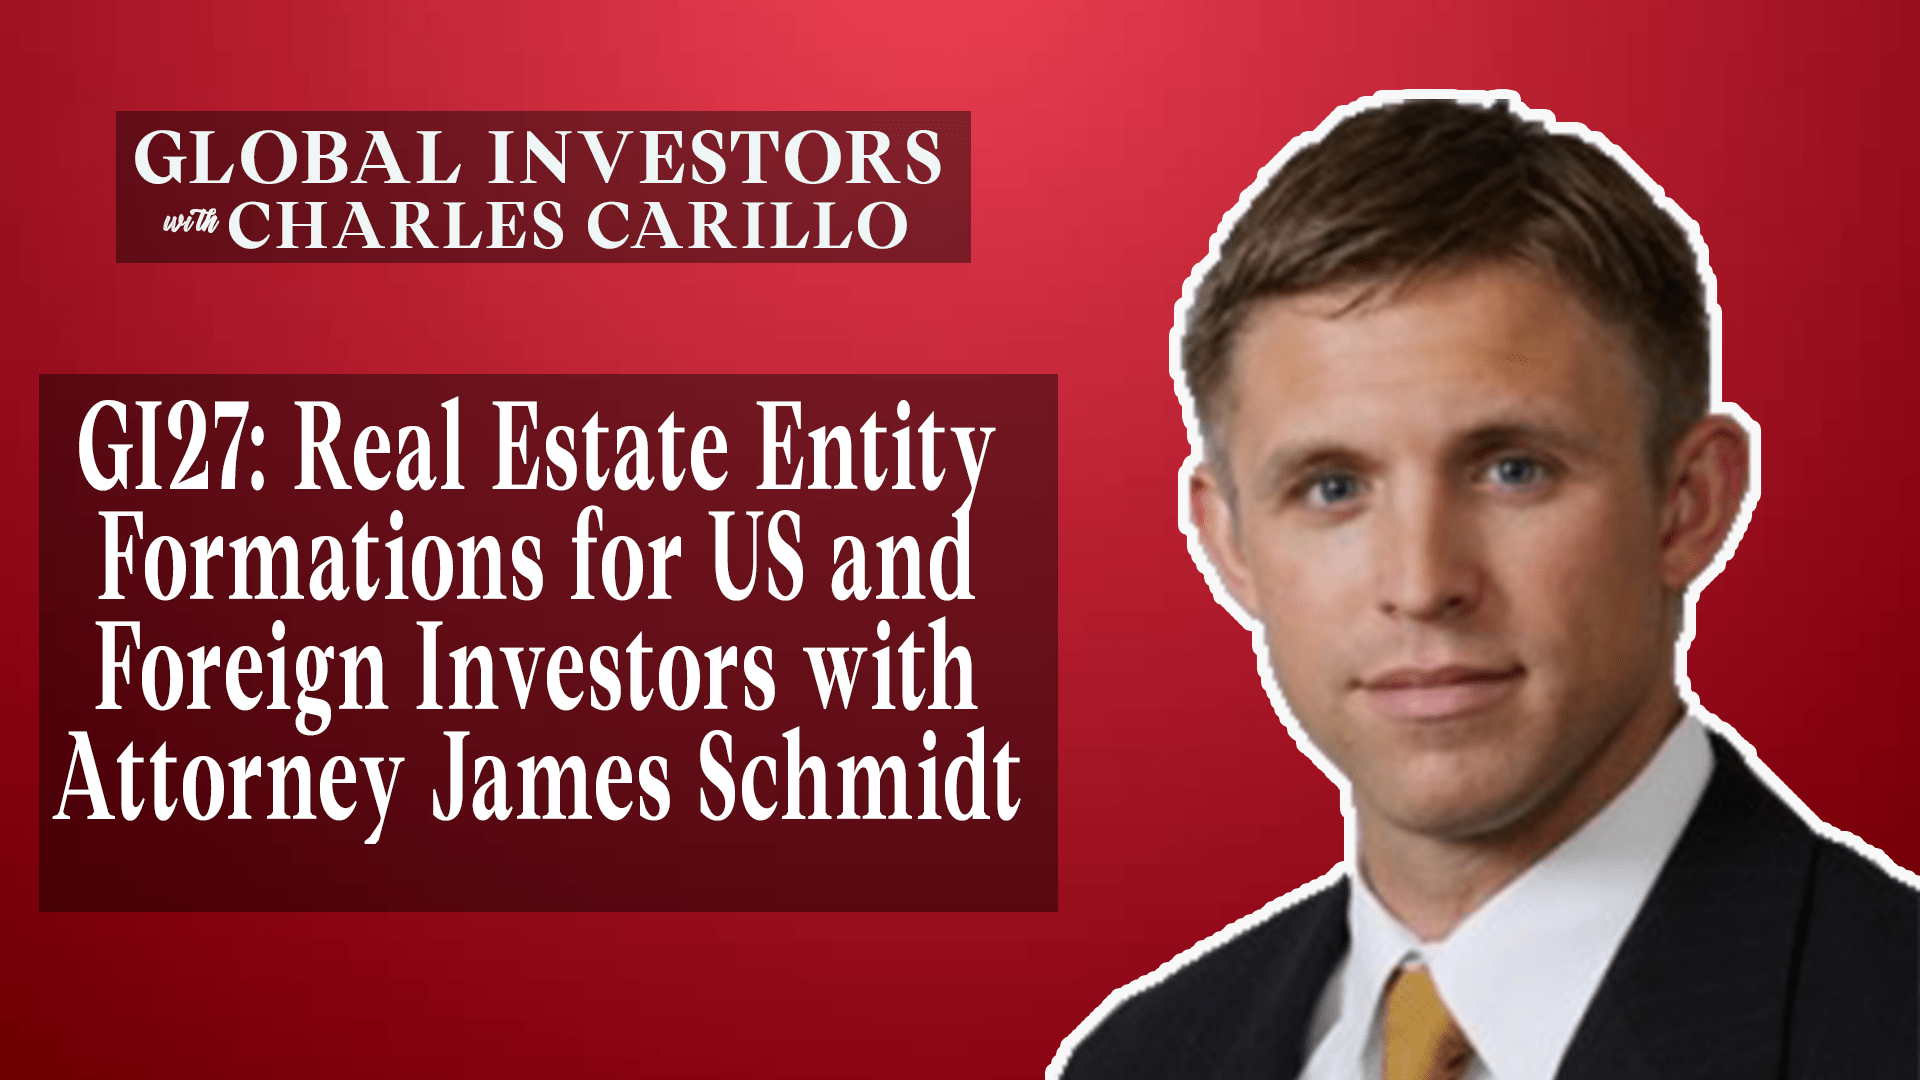 GI27: Real Estate Entity Formations for US and Foreign Investors with Attorney James Schmidt